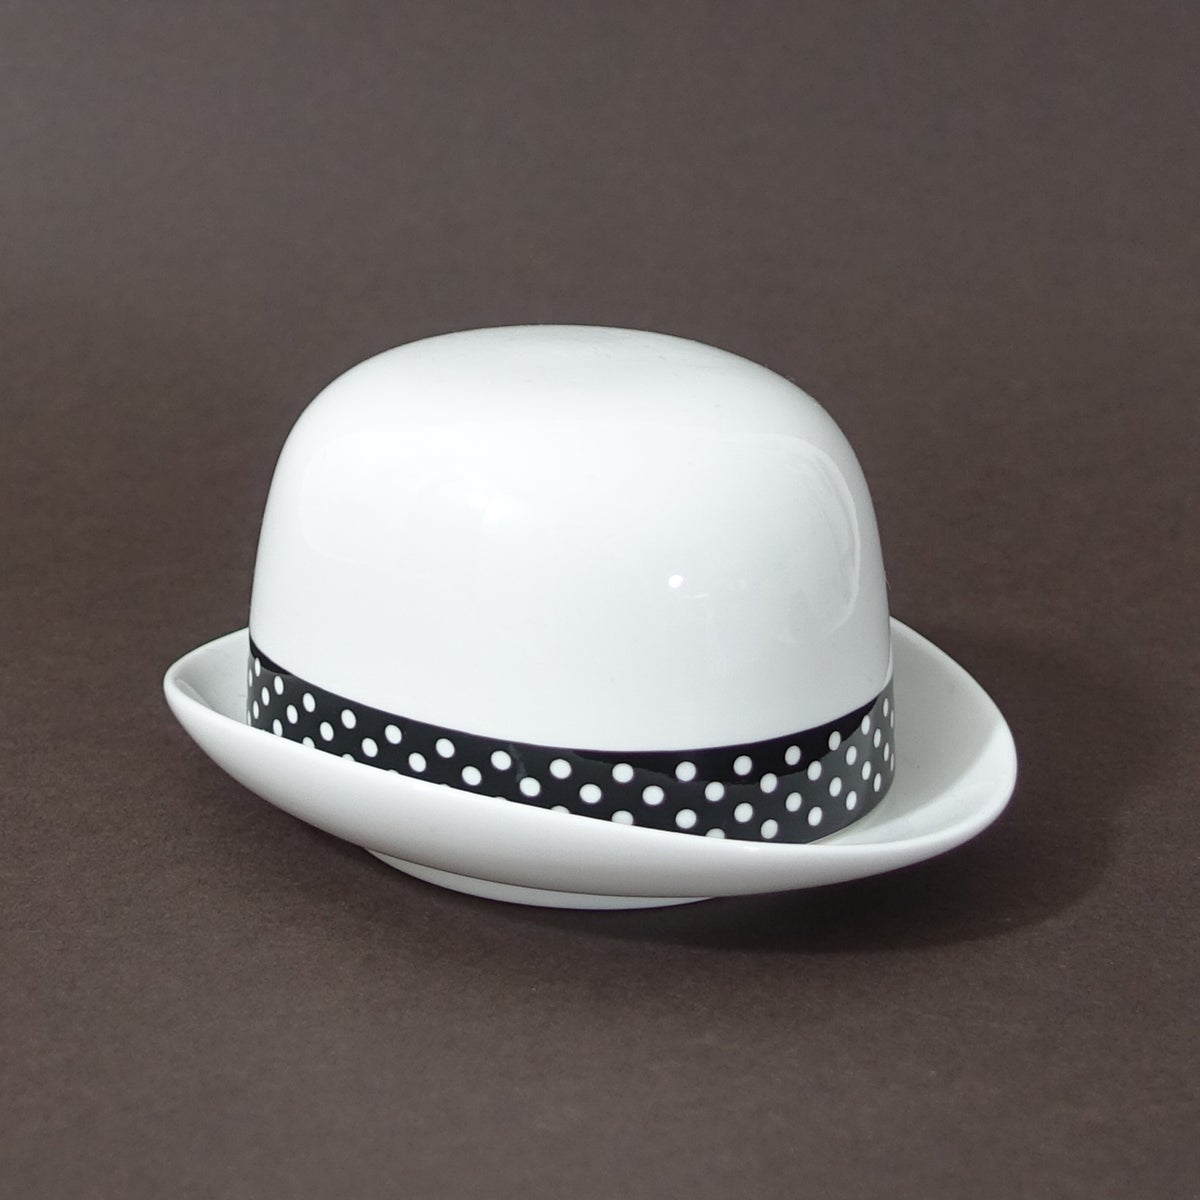 Image of Thomson & Thompson Black & White Polka Dot Sugar Bowl